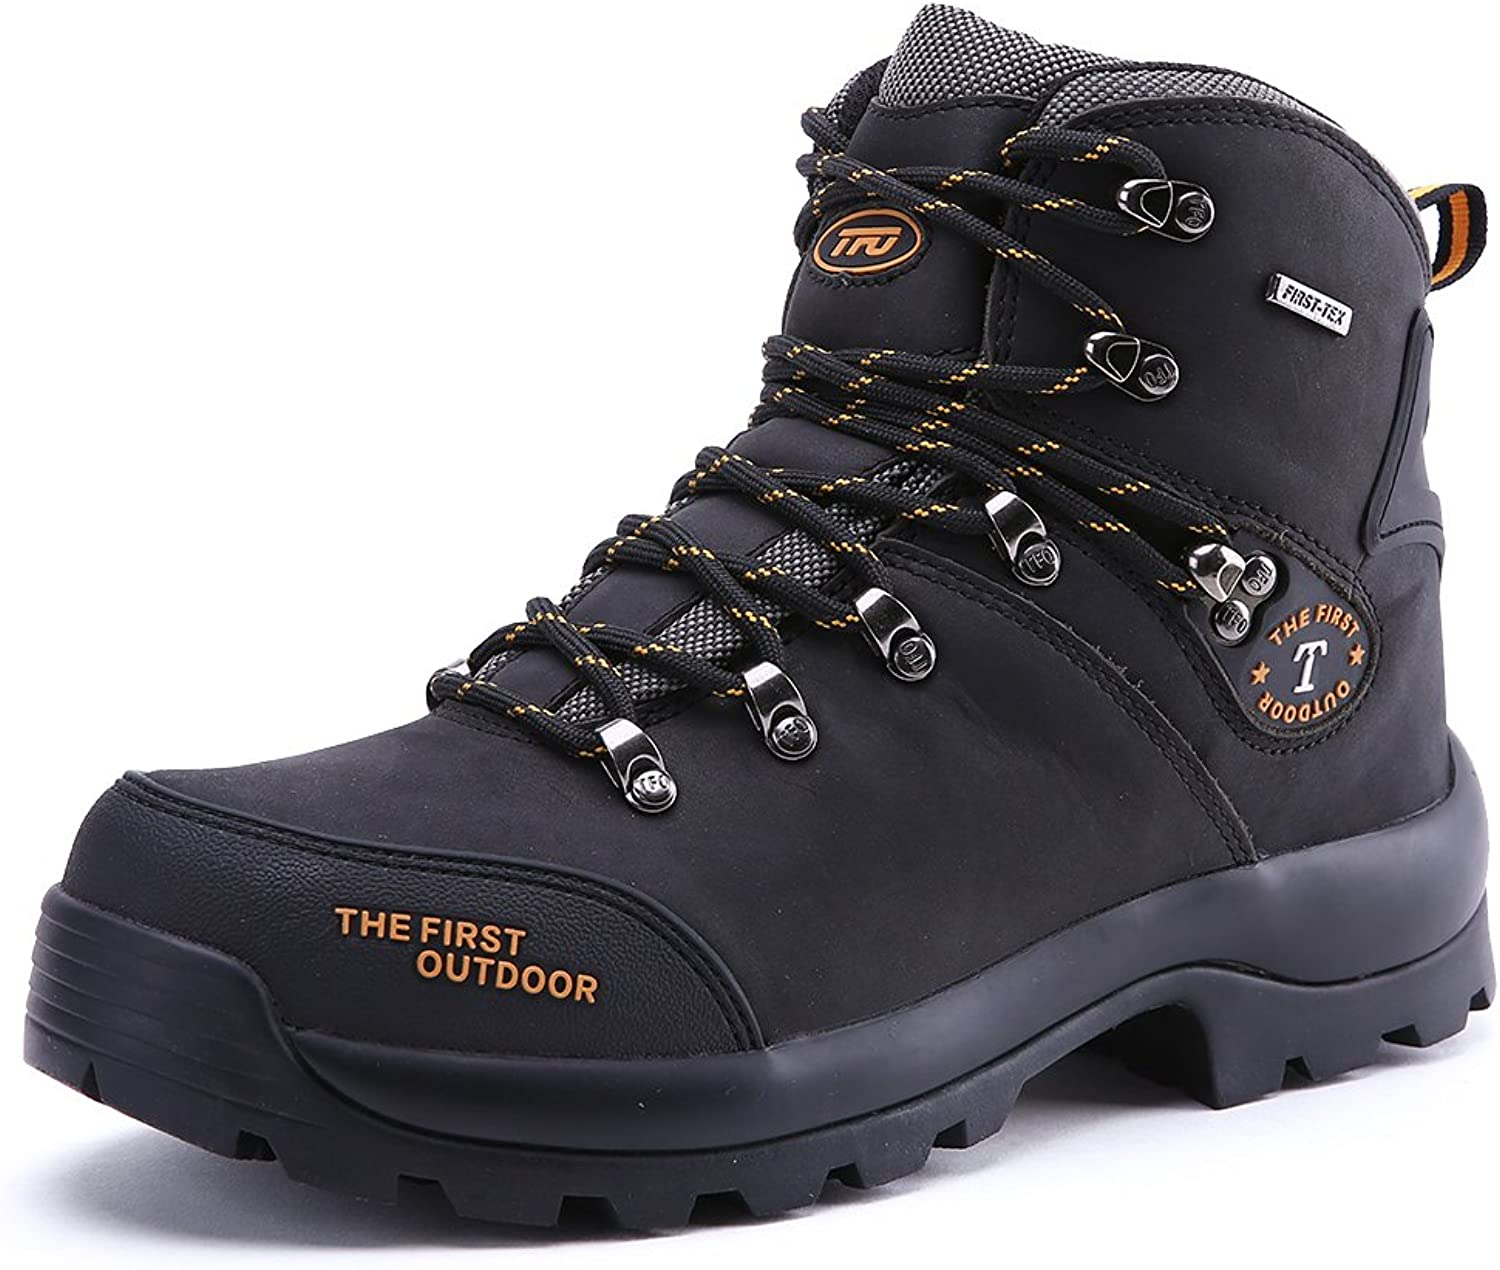 TFO Women's Waterproof Hiking Boots Trekking Outdoor Sneakers Climbing Sports Breathable shoes Black 6